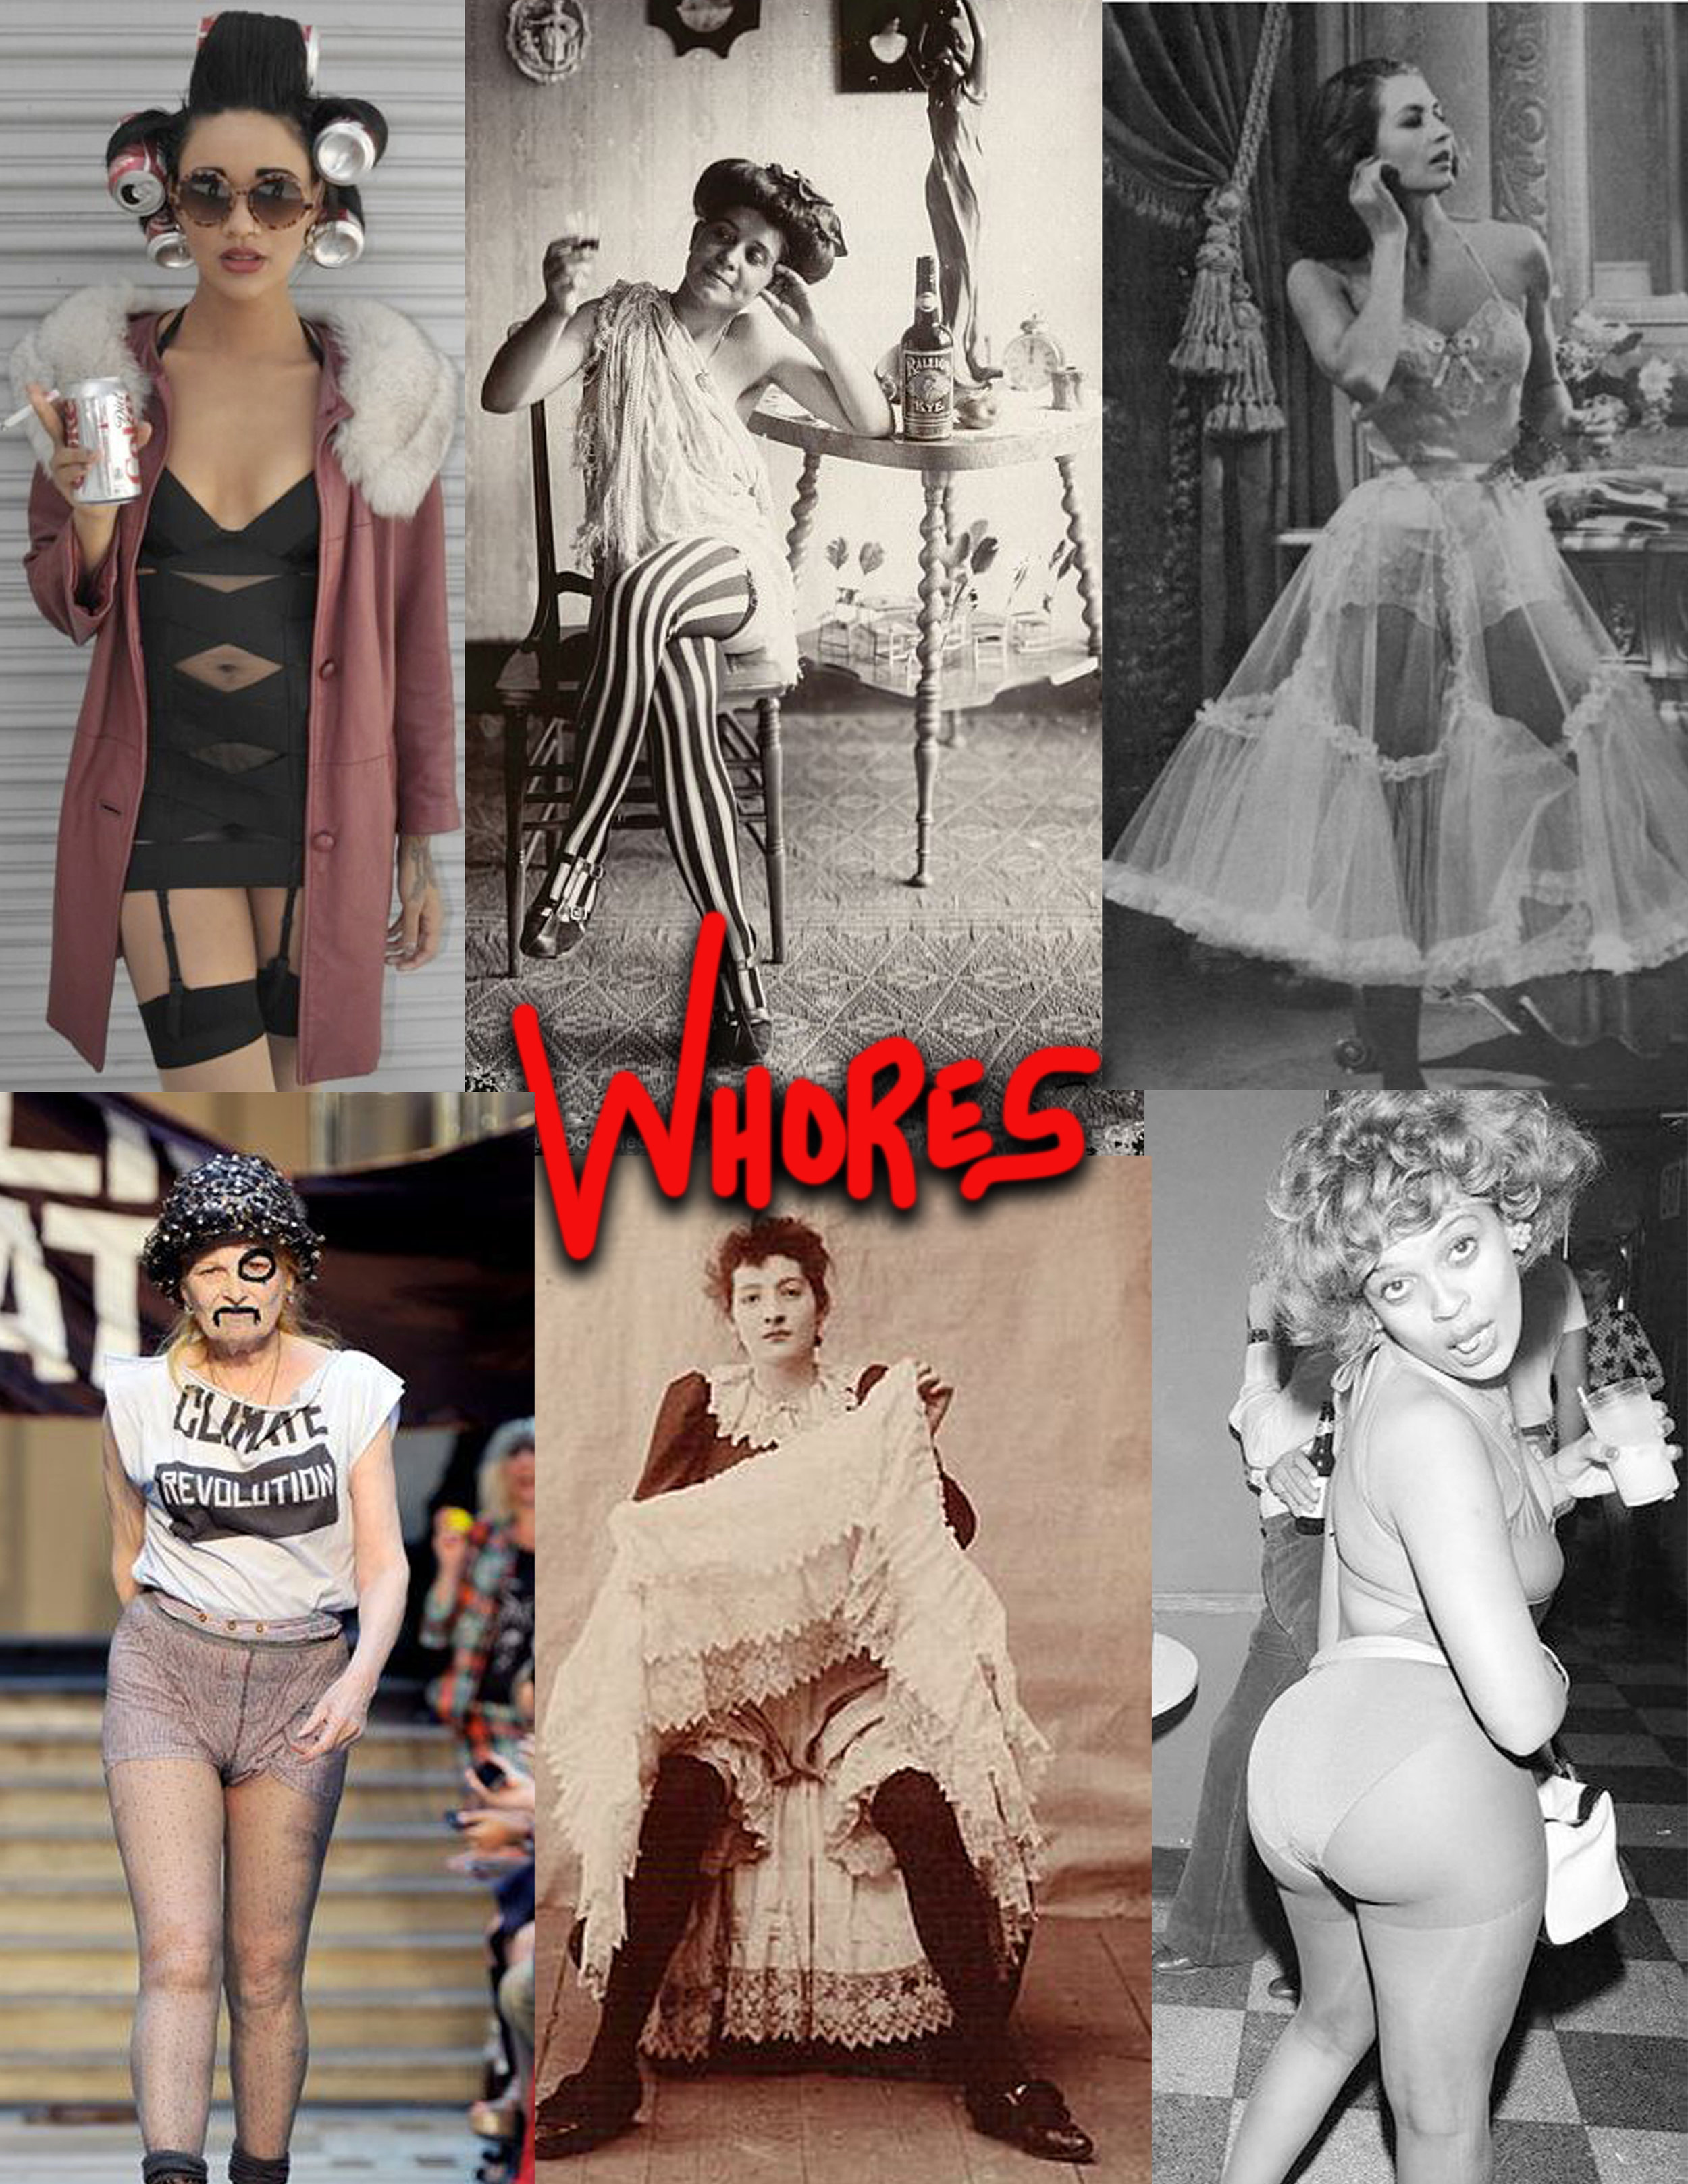 Inspiration collage for whores